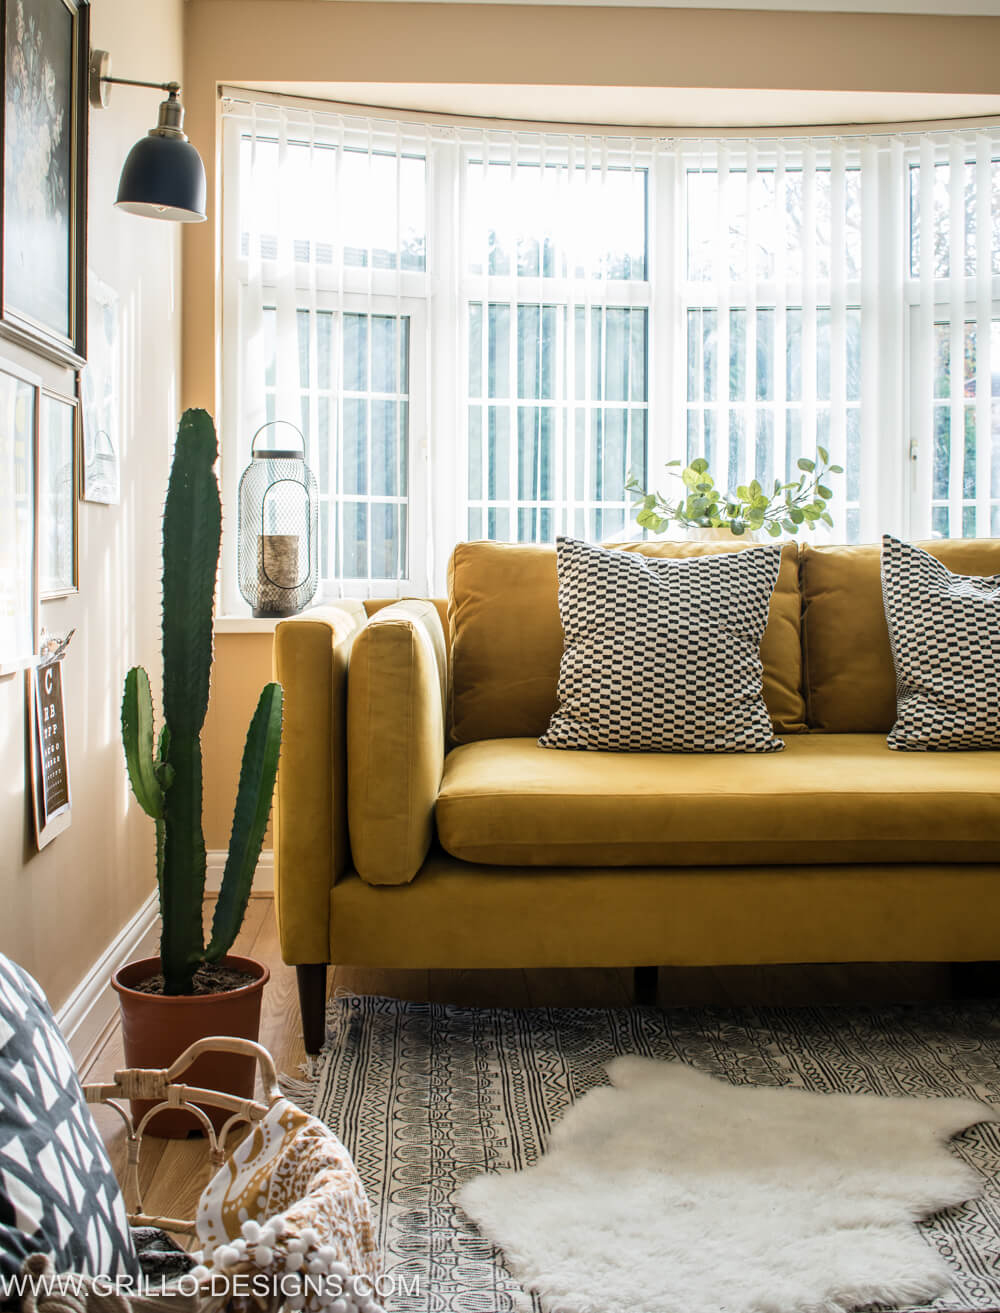 Velvet mustard sofa in front of a large bay window